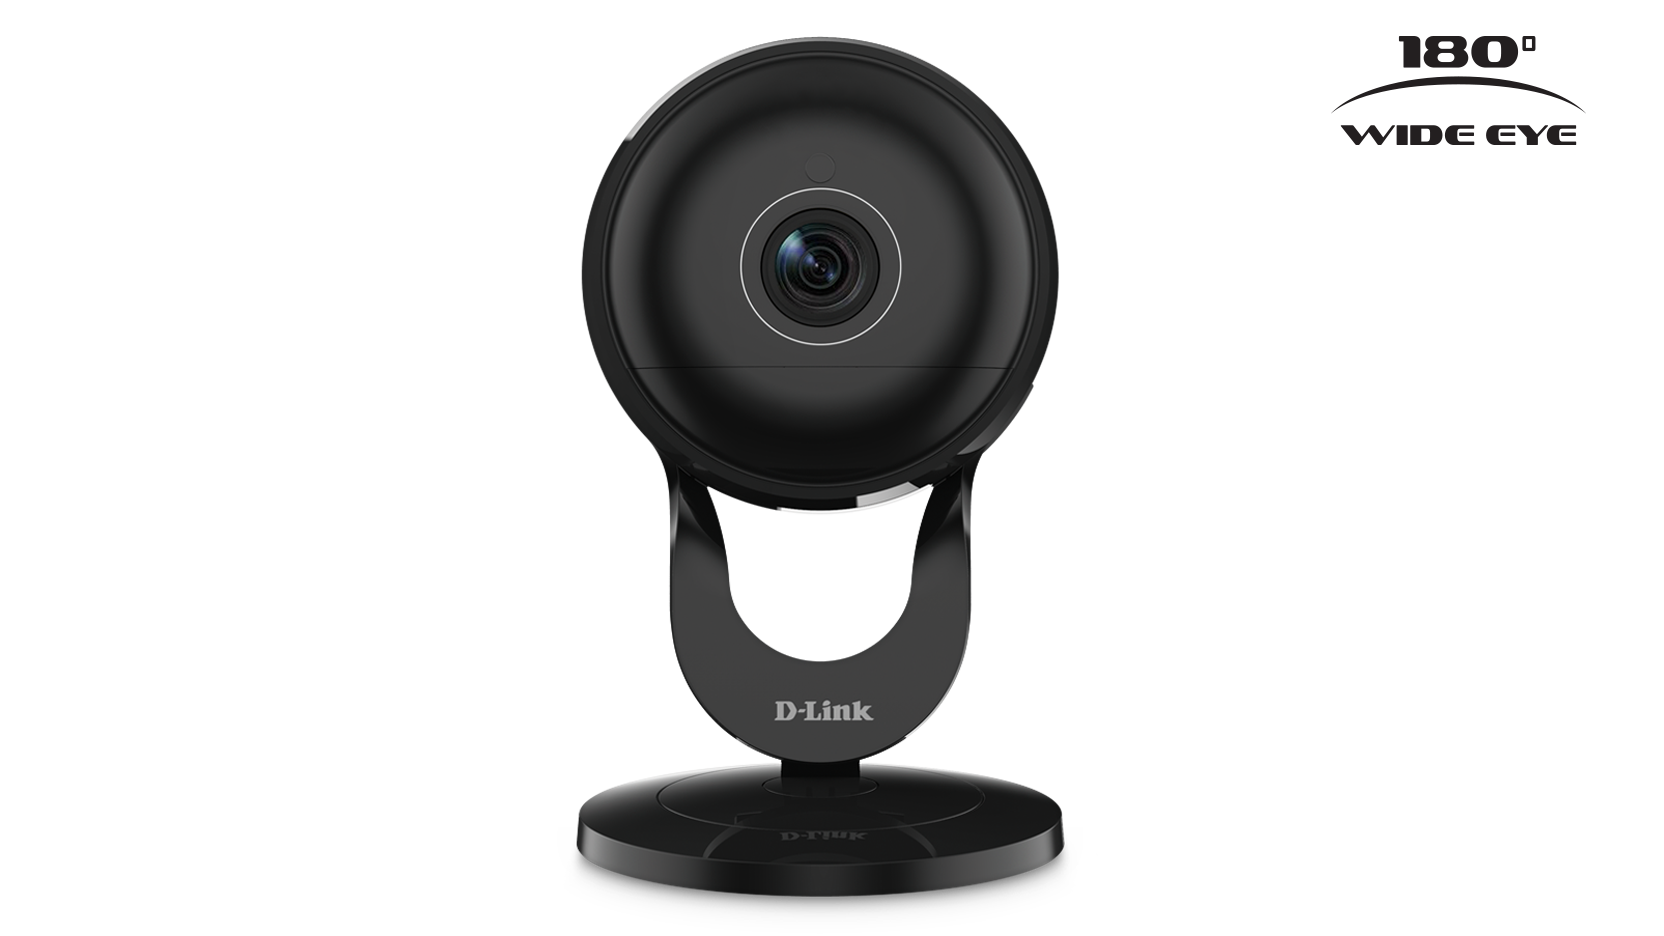 full hd 180-degree wi-fi camera dcs-2630l | d-link